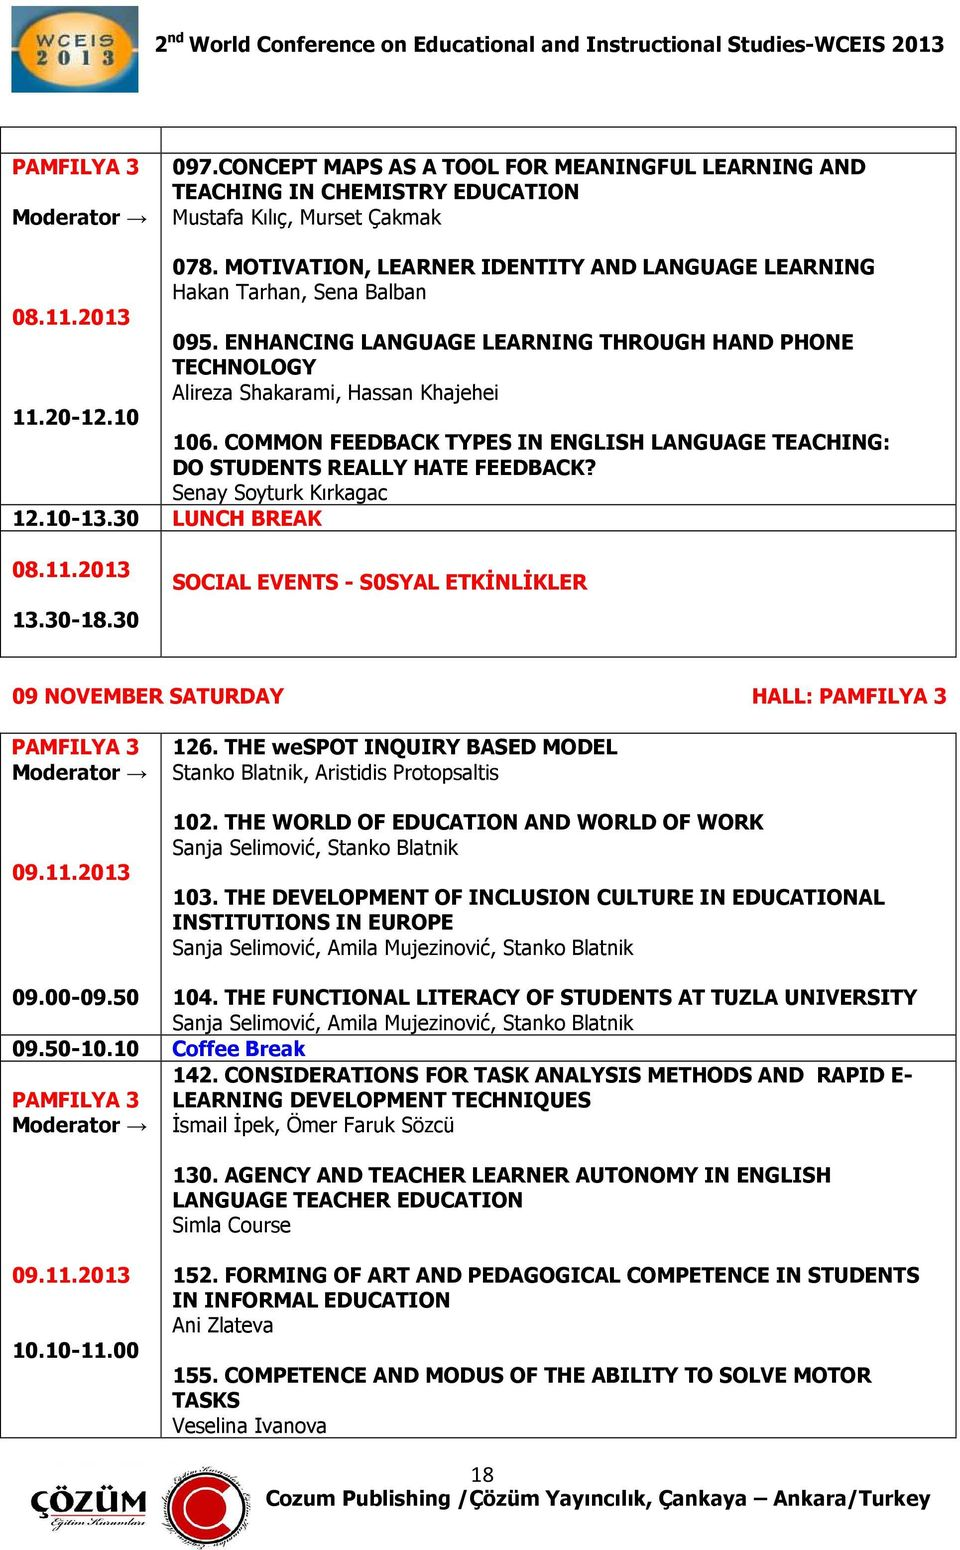 COMMON FEEDBACK TYPES IN ENGLISH LANGUAGE TEACHING: DO STUDENTS REALLY HATE FEEDBACK? Senay Soyturk Kırkagac 12.10-13.30 LUNCH BREAK 08.11.2013 13.30-18.